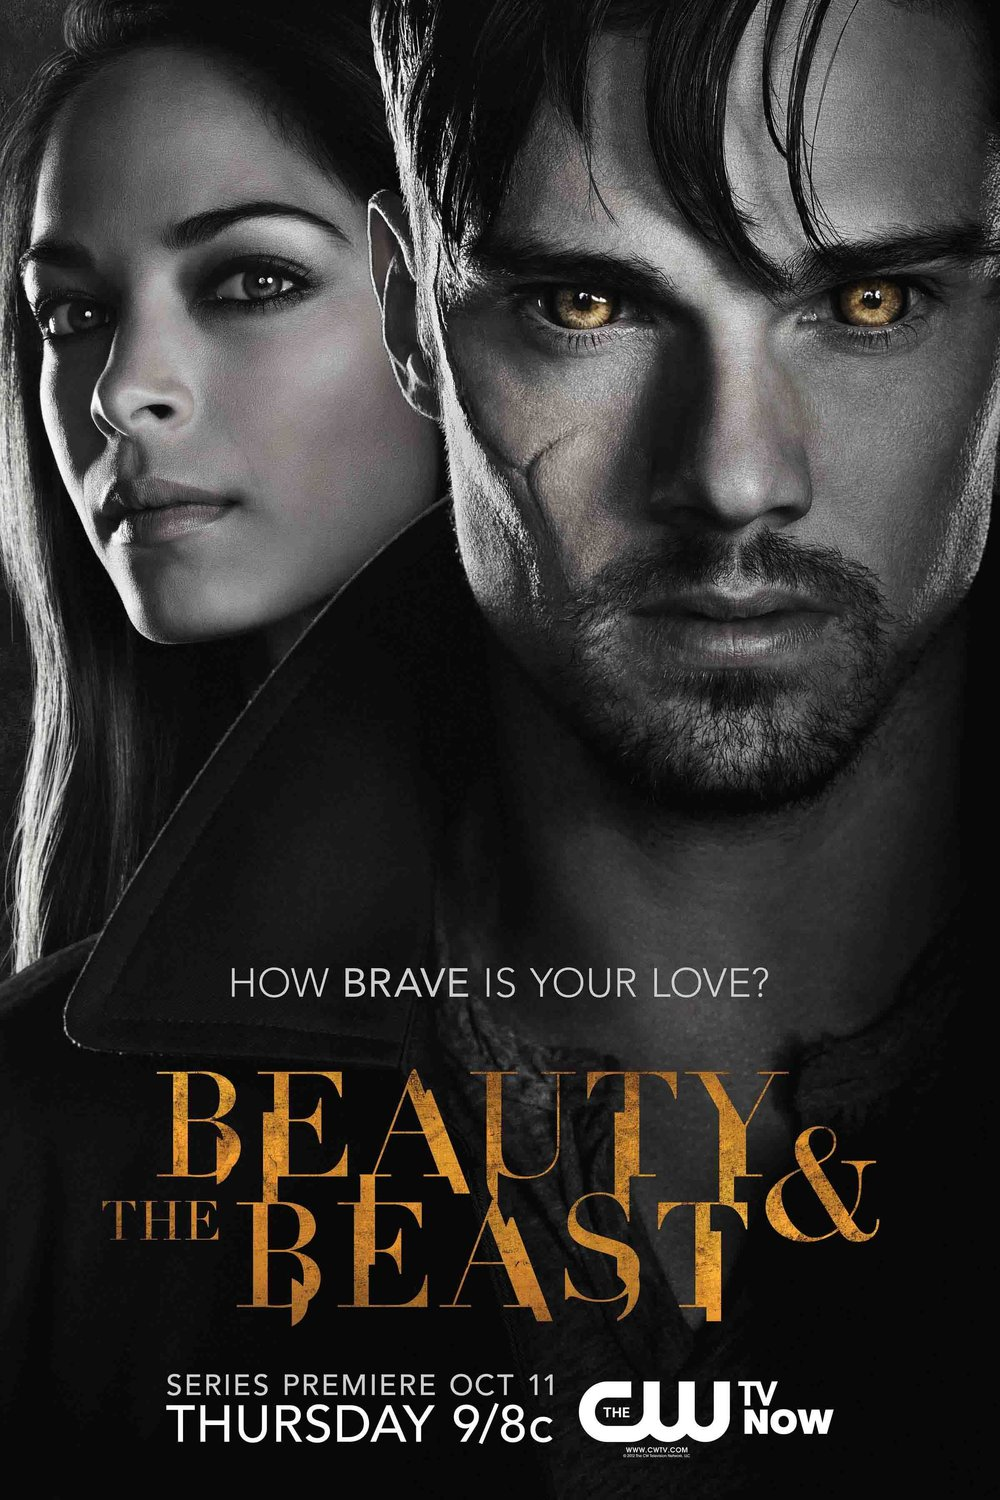 cw-unveils-posters-for-new-fall-shows-emily-owens-m-d--arrow-and-beauty-and-the-beast.jpg